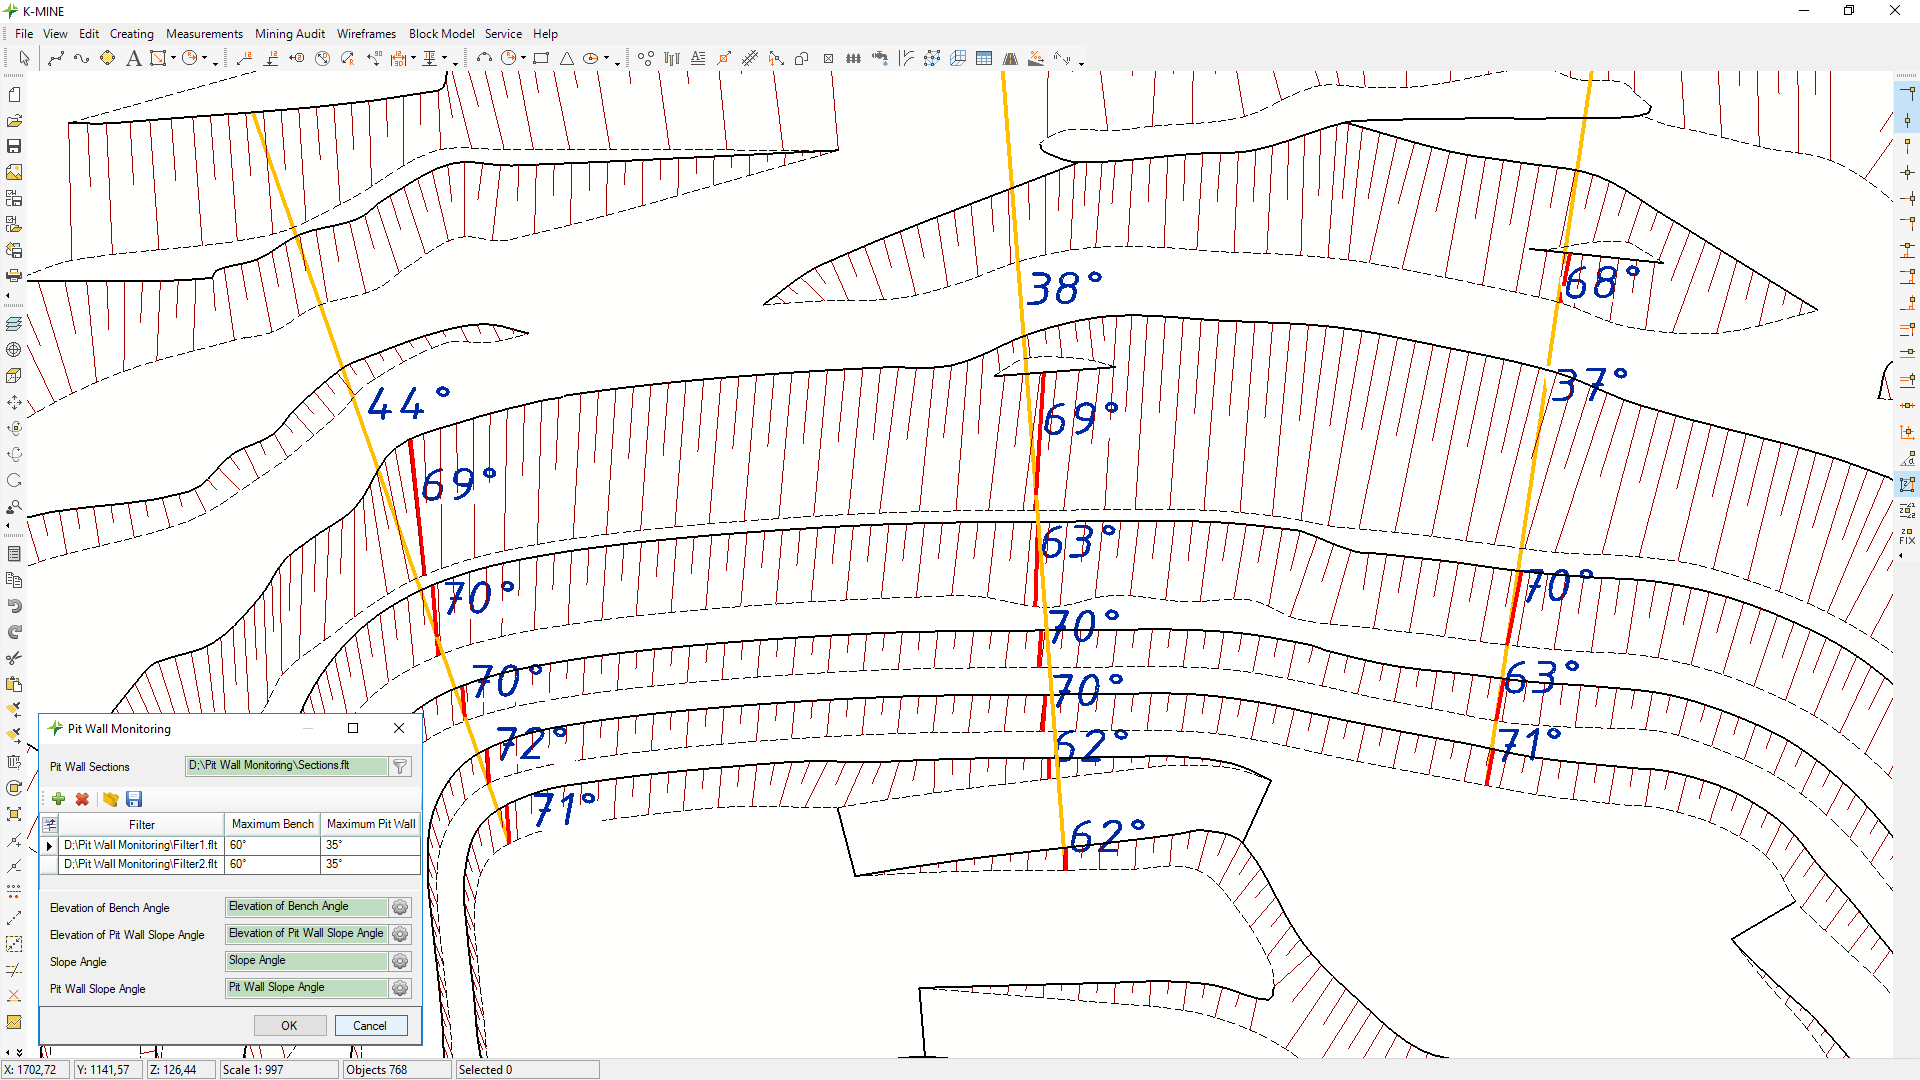 Visualizing exceeding values on slope angles of benches and pit walls